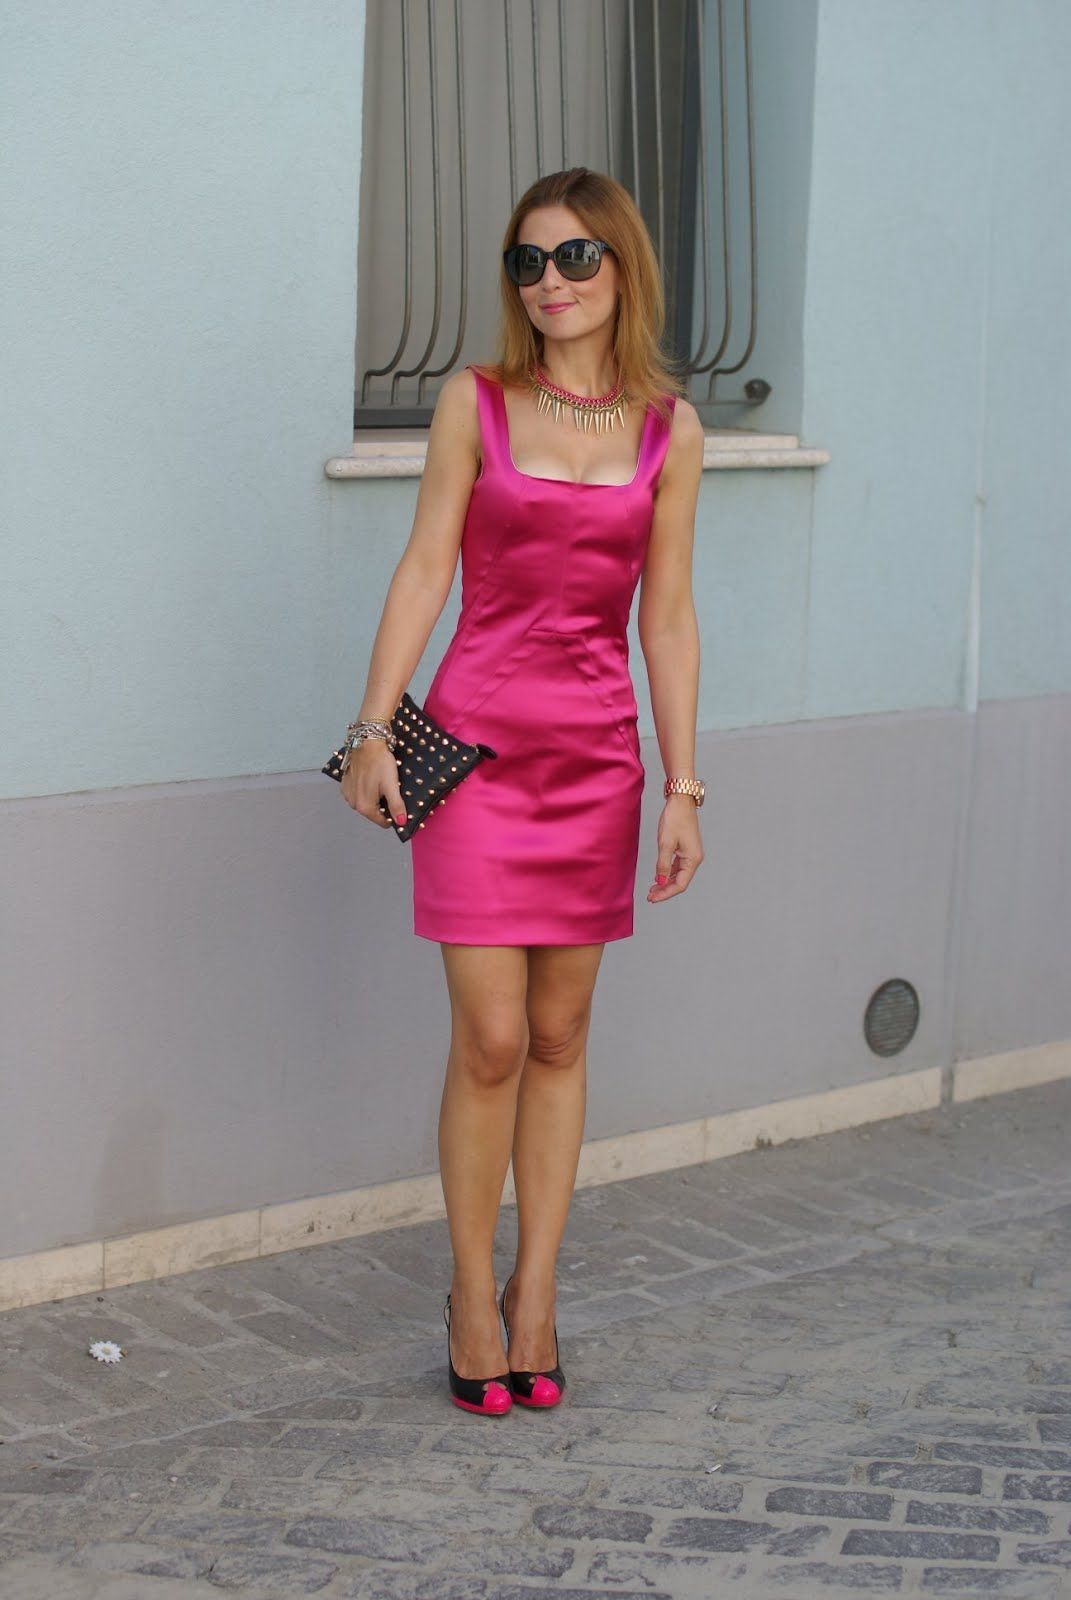 Dolce e Gabbana fuchsia dress